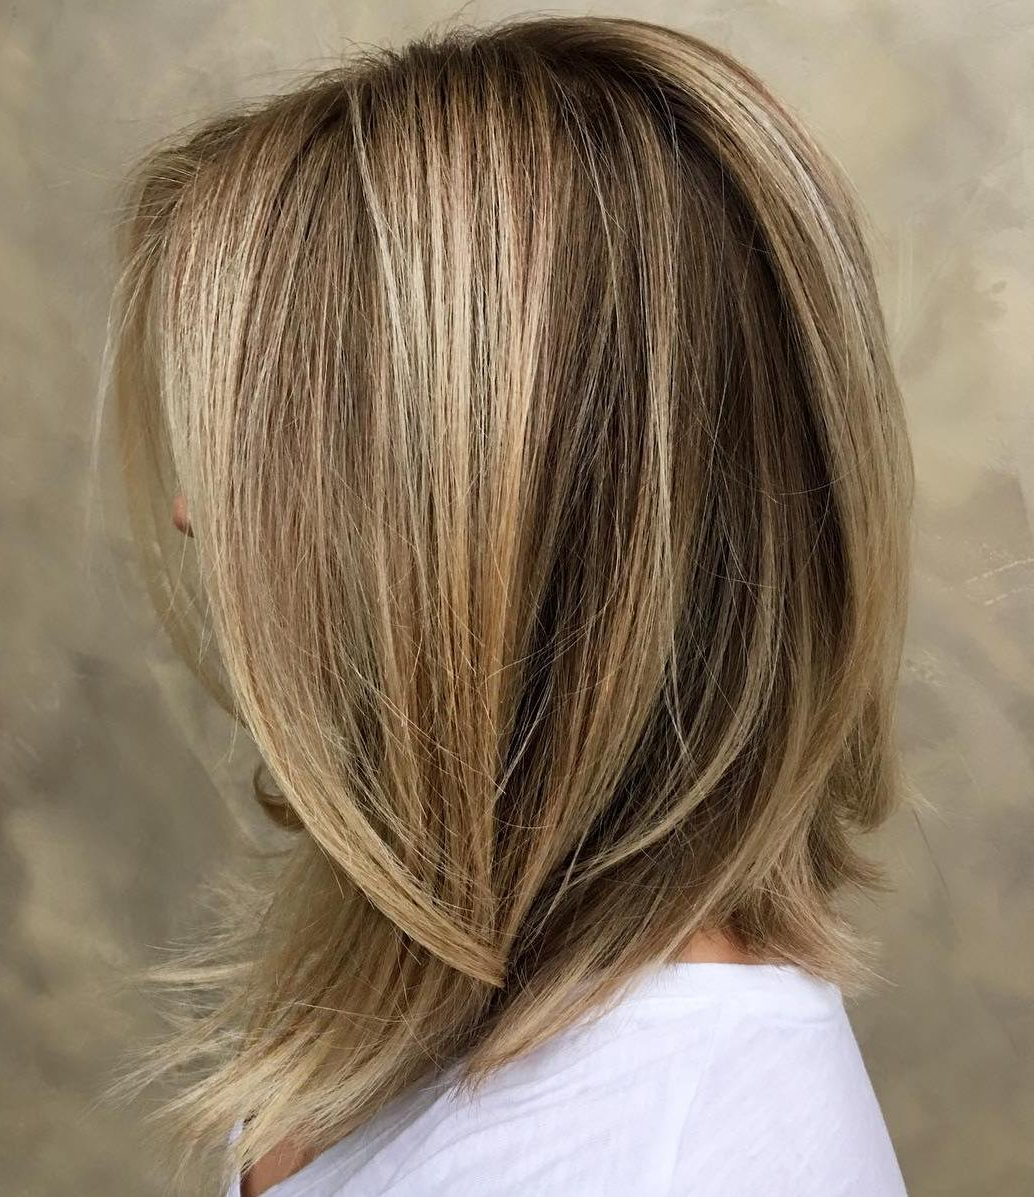 60 Inspiring Long Bob Hairstyles And Long Bob Haircuts For 2019 With Popular Bedhead Layers For Long Hairstyles (View 8 of 20)